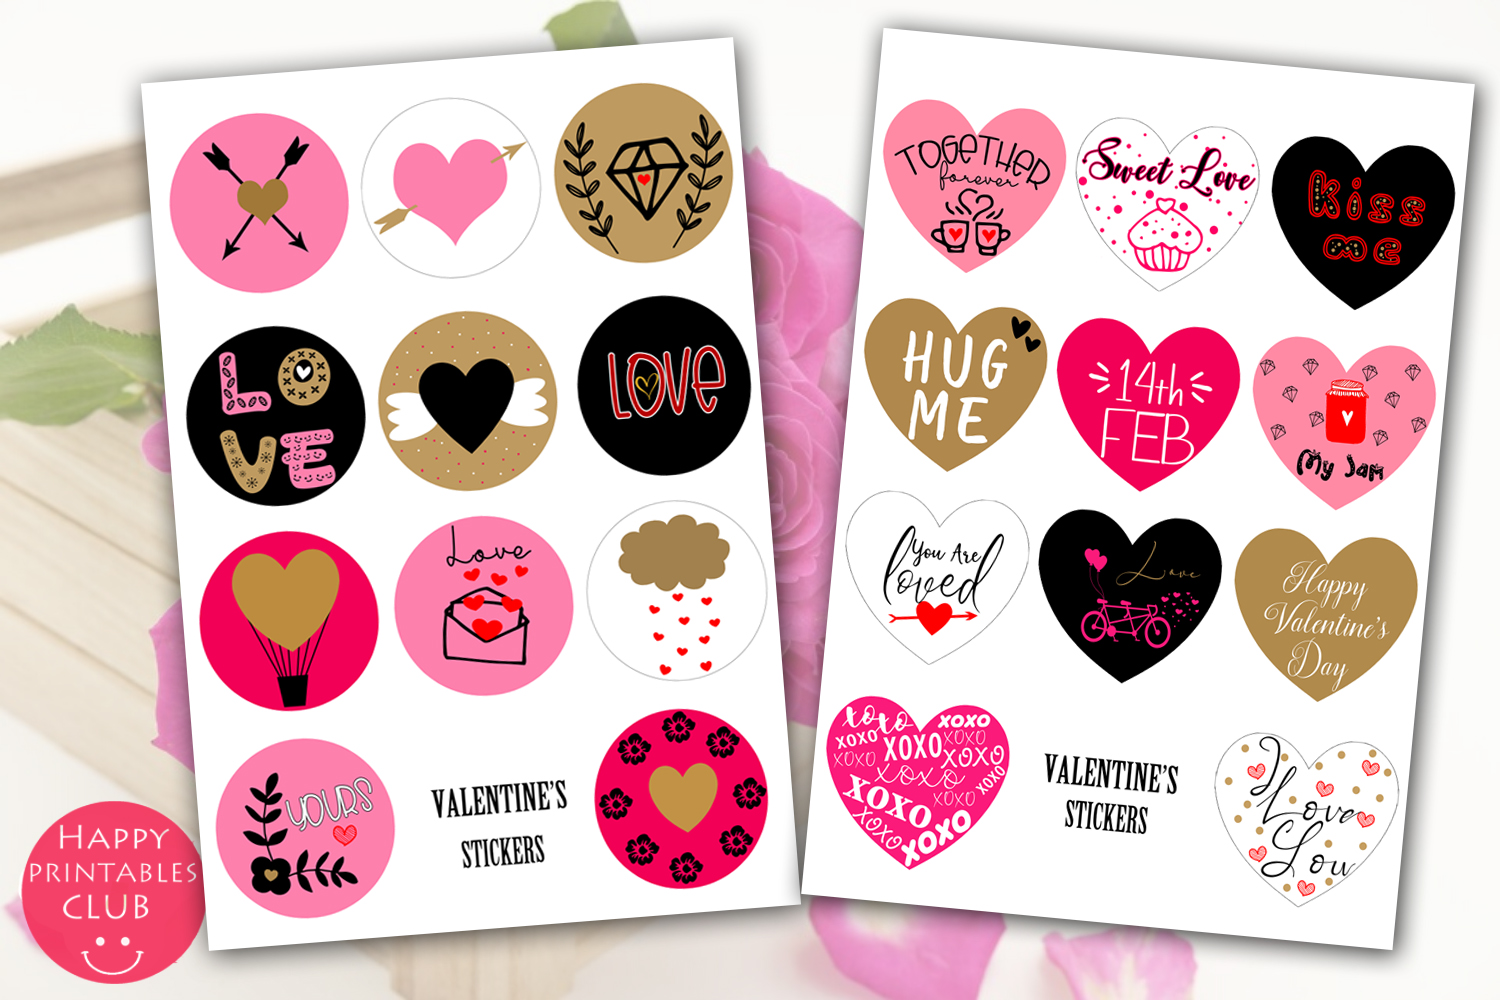 Valentines Day Stickers- Cute Stickers Valentines Day example image 2